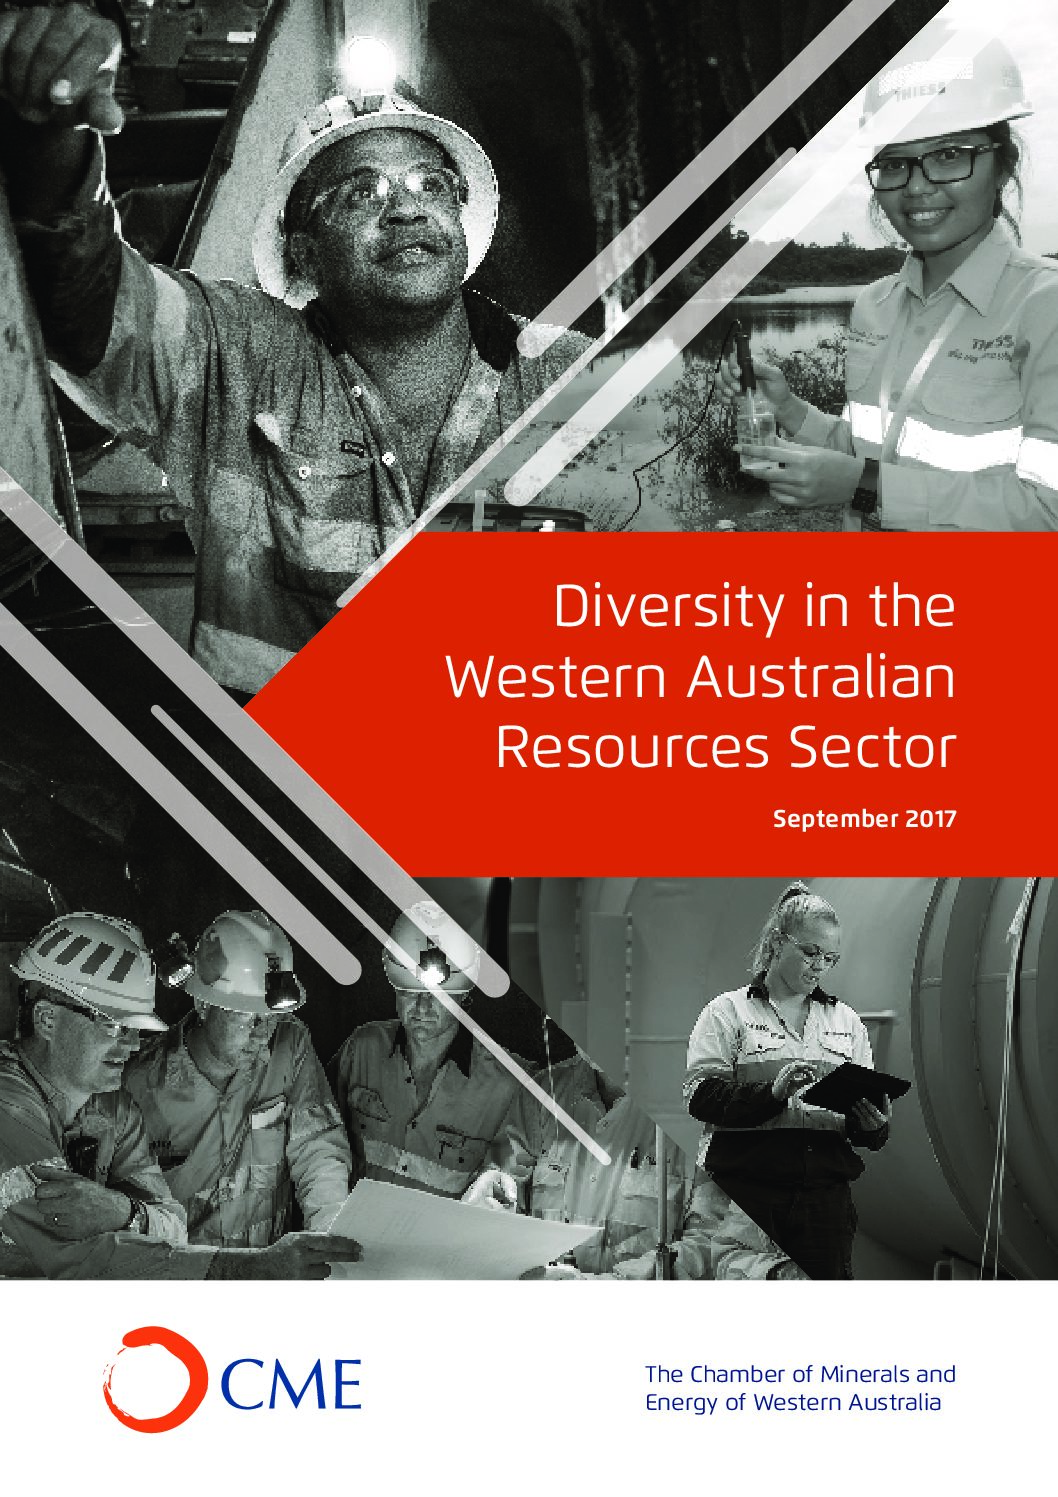 Diversity in the Western Australian Resources Sector Survey Report 2017